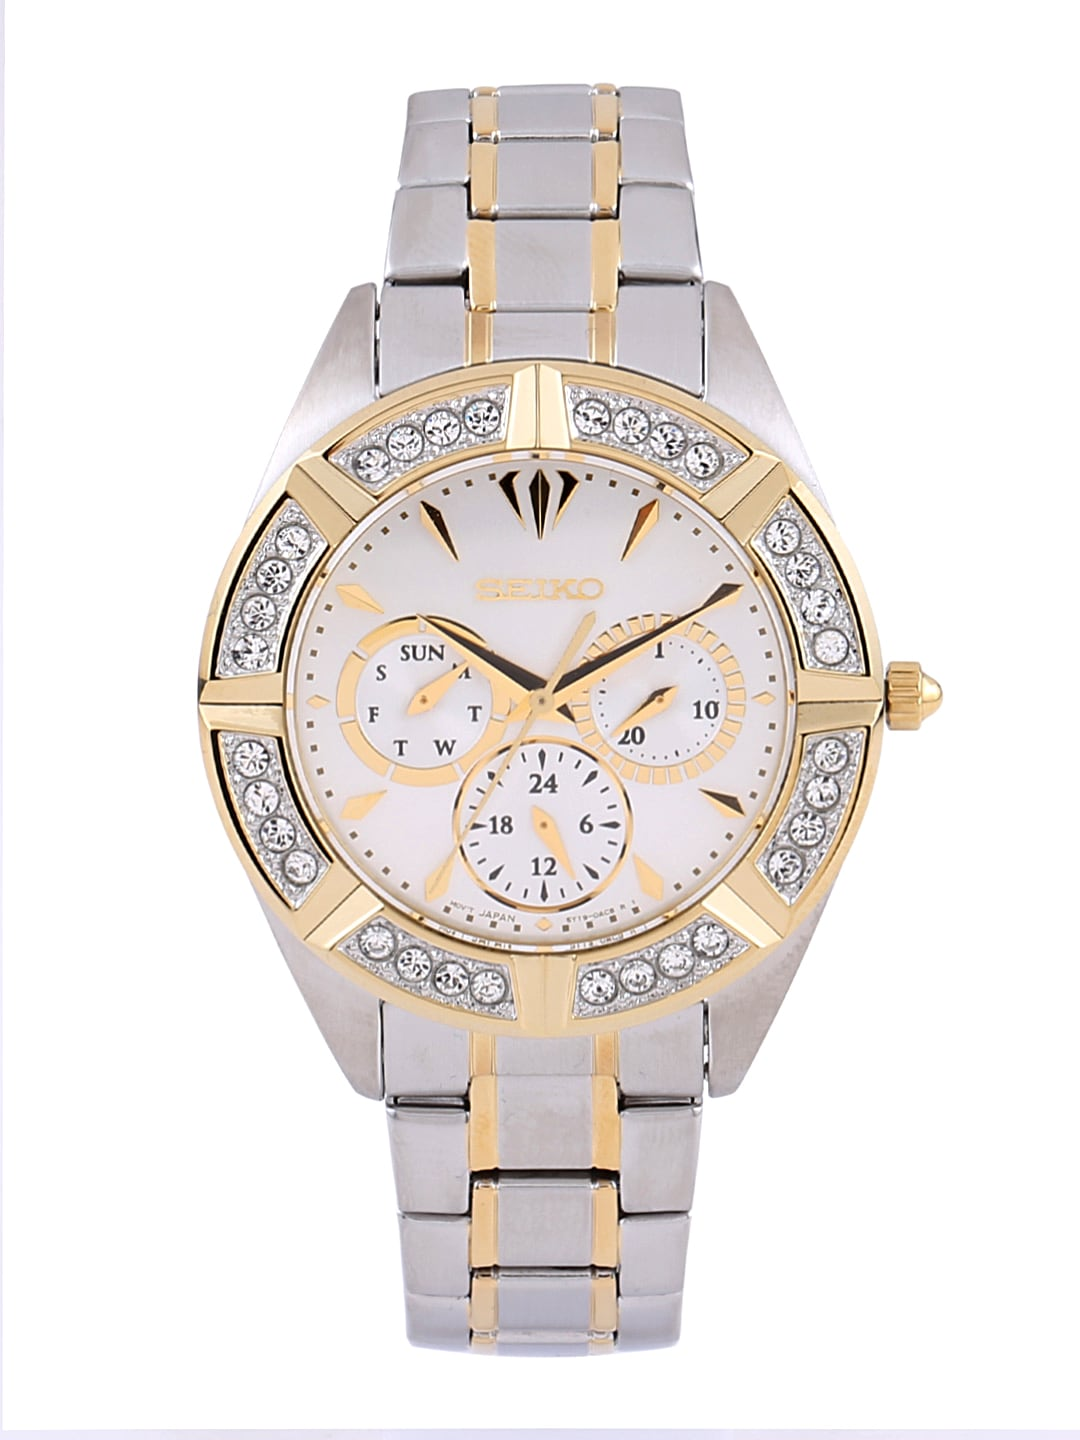 SEIKO Women Silver-Toned Swarovski Dial Watch SKY676P1